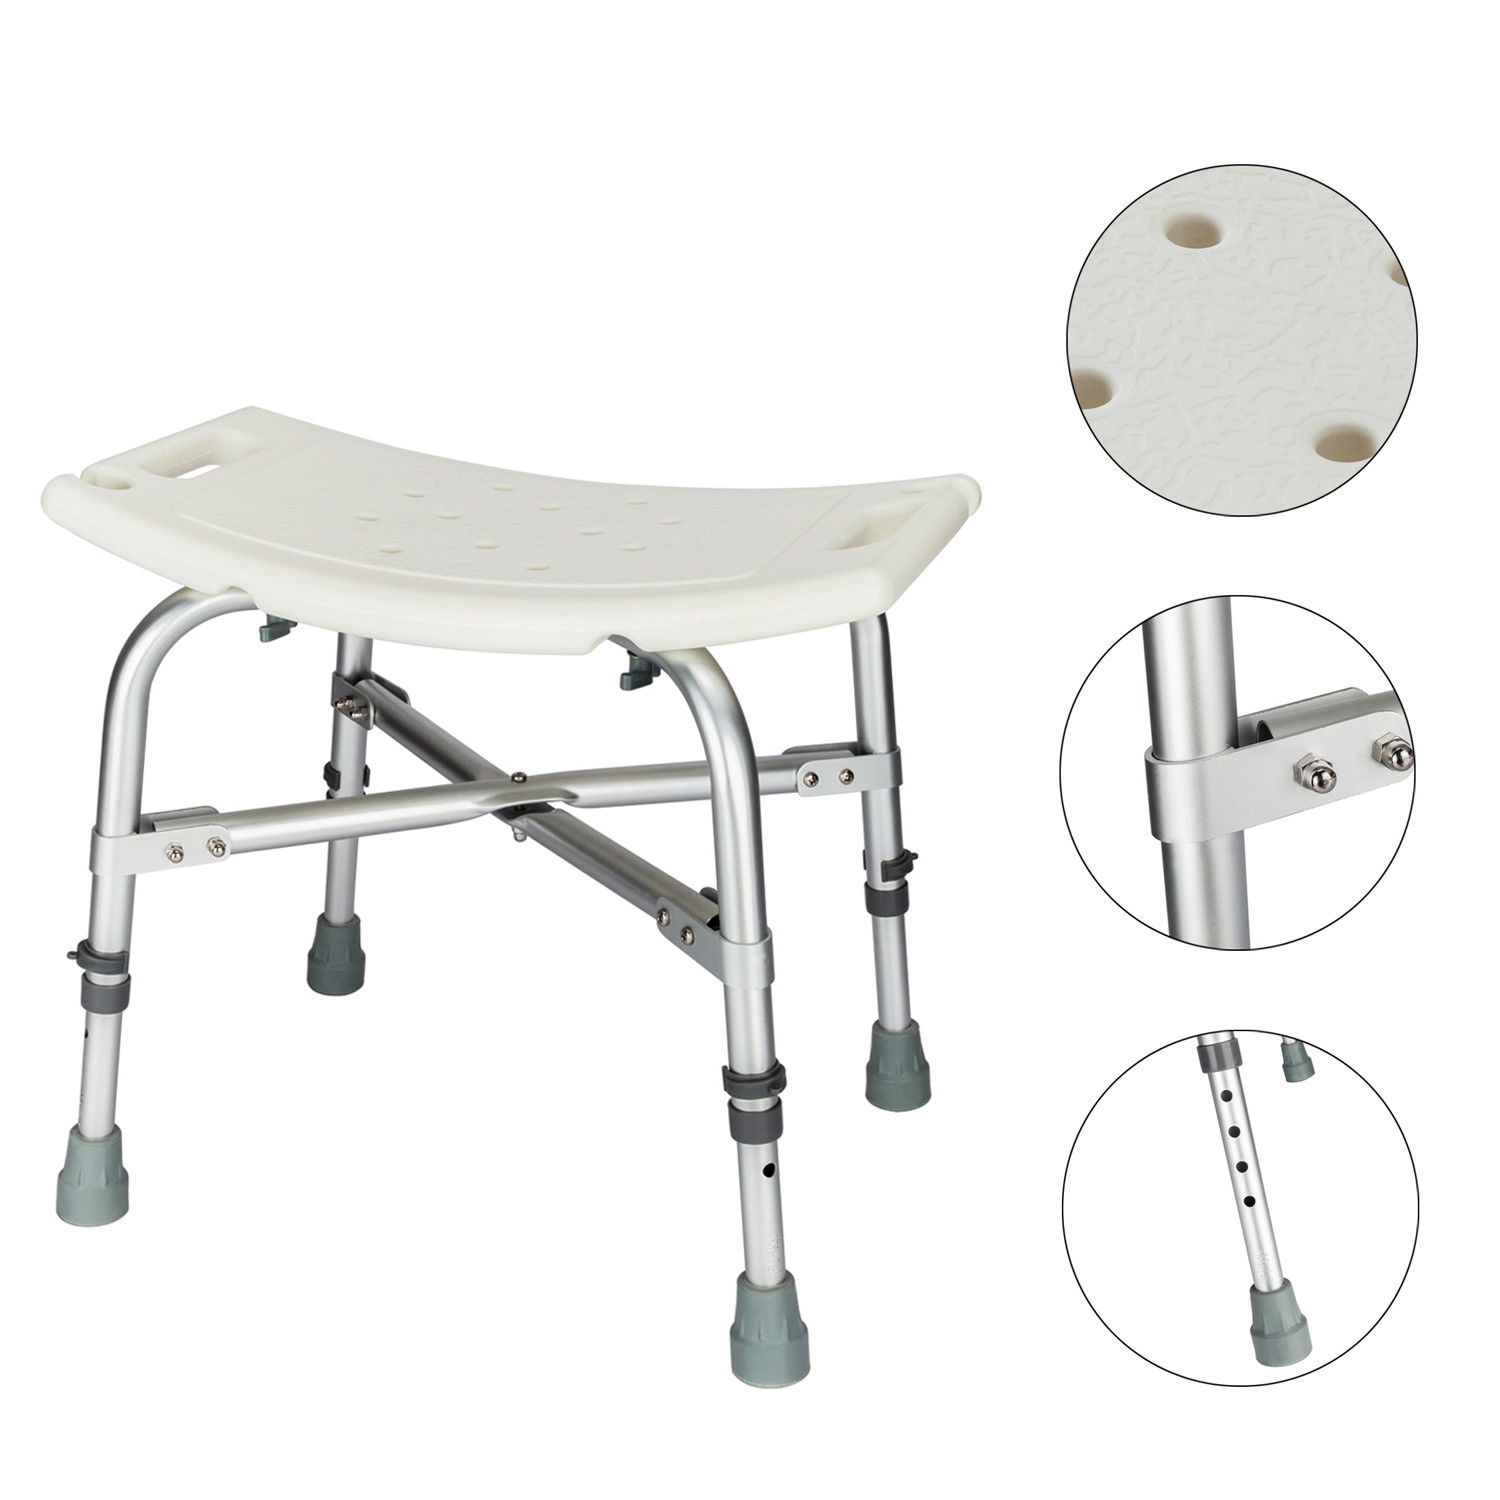 Ktaxon Adjustable Bath Chair Medical Shower Stool Heavy-duty Bathtub Chair Bath Bench Without Back